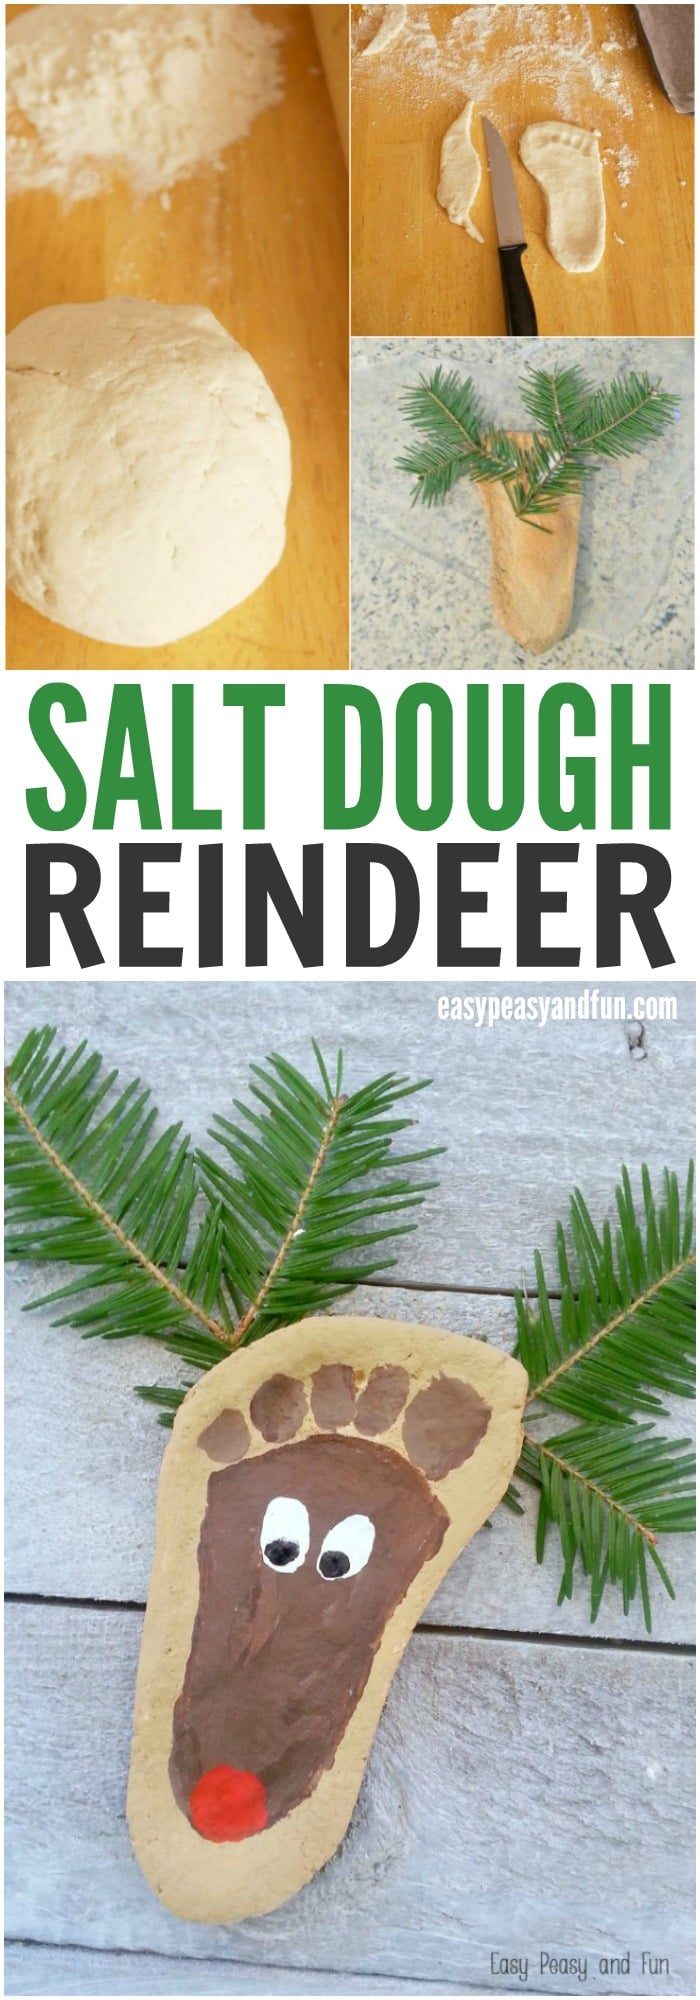 Easy Peasy And Fun: Salt Dough Reindeer Ornament